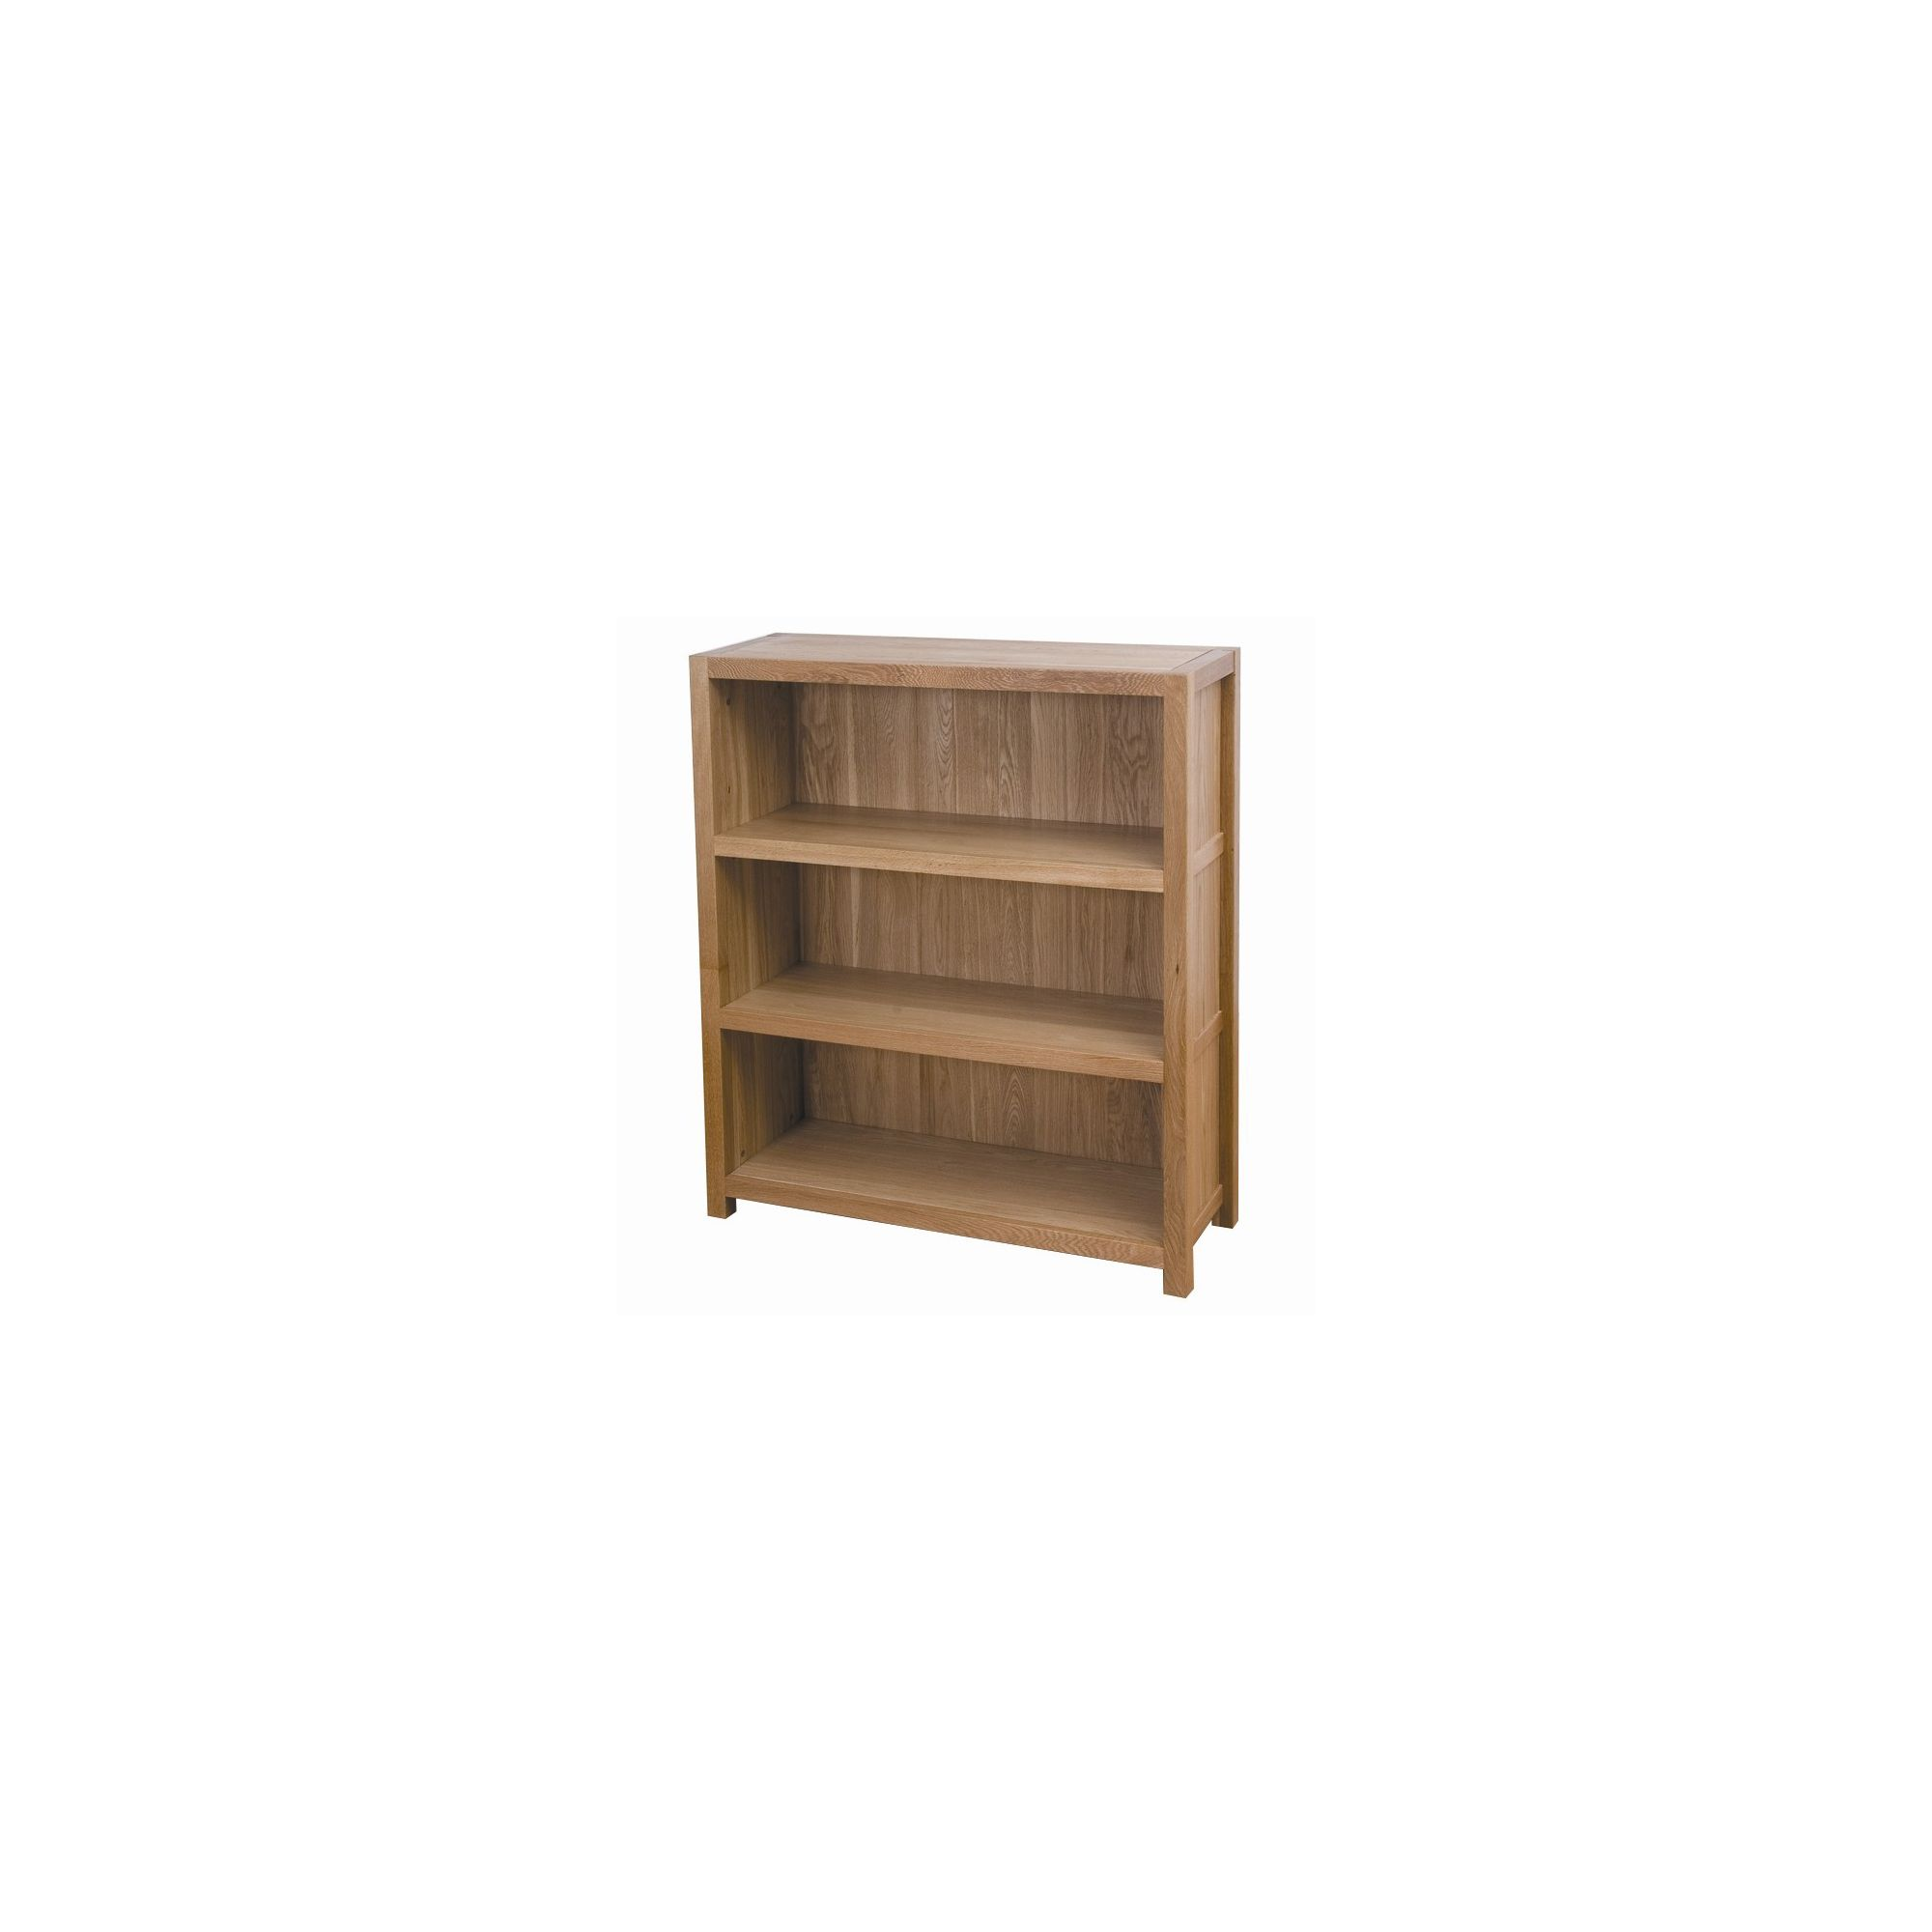 G&P Furniture Low Oak Bookcase at Tesco Direct